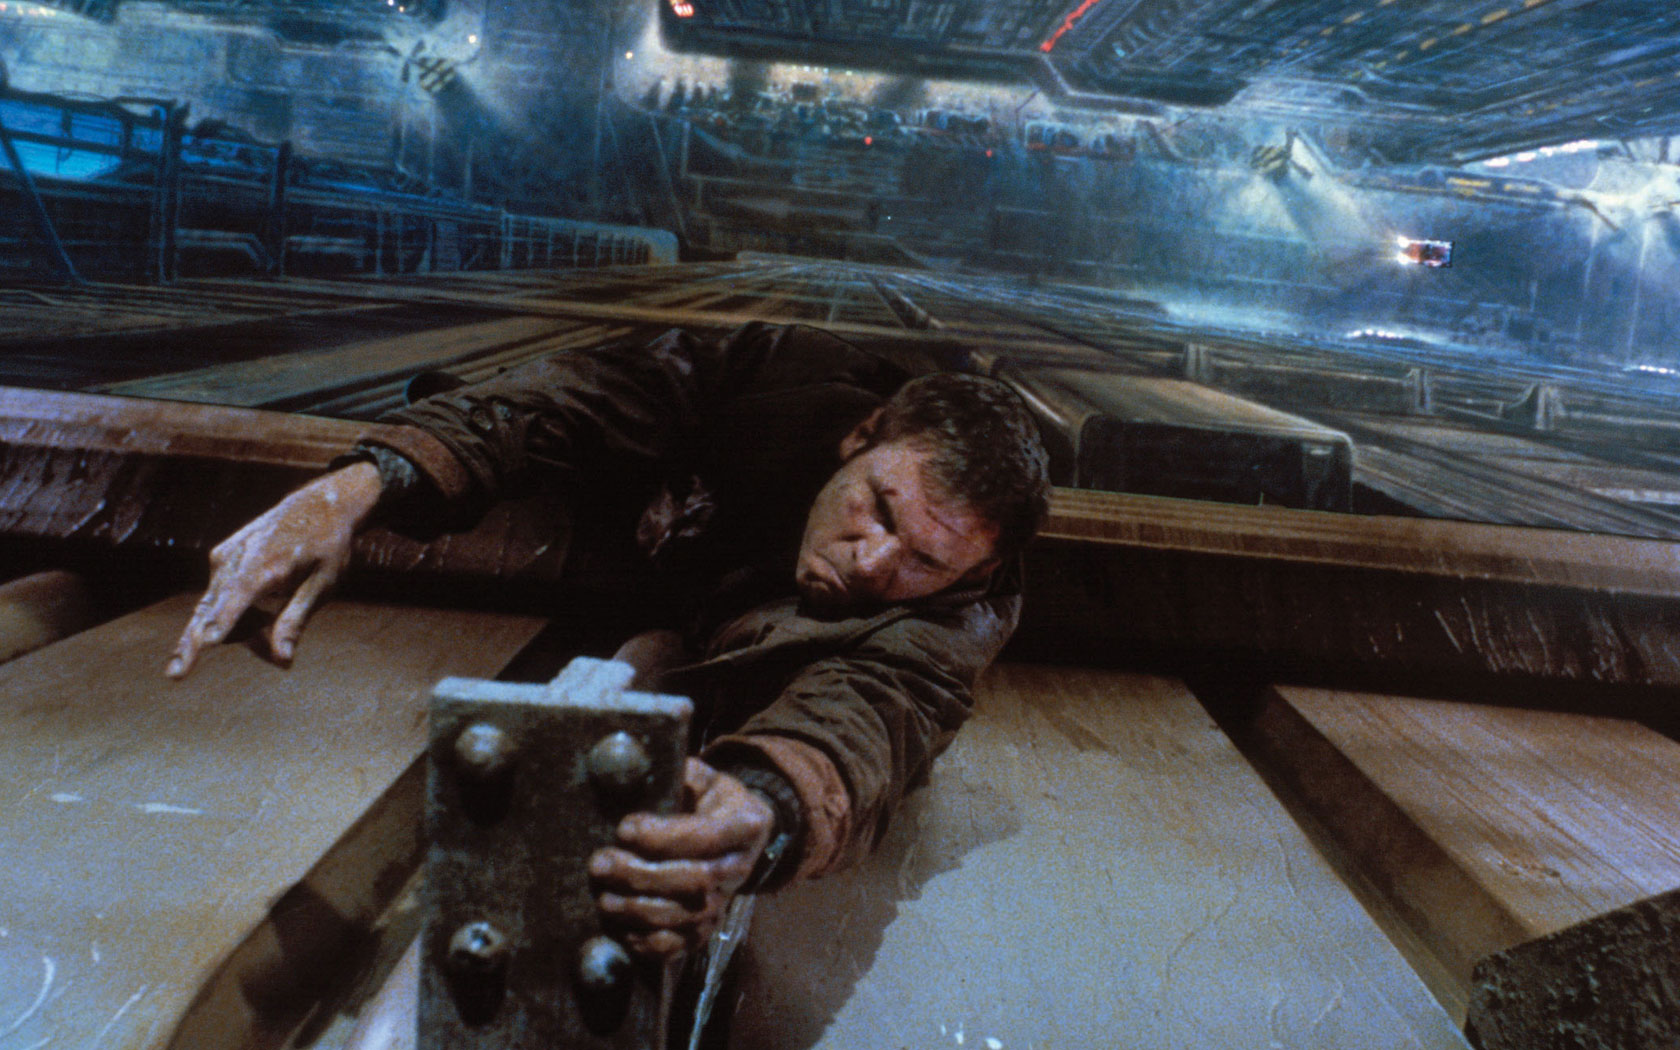 Blade Runner Wallpaper 1680x1050 Blade Runner Harrison Ford 1680x1050